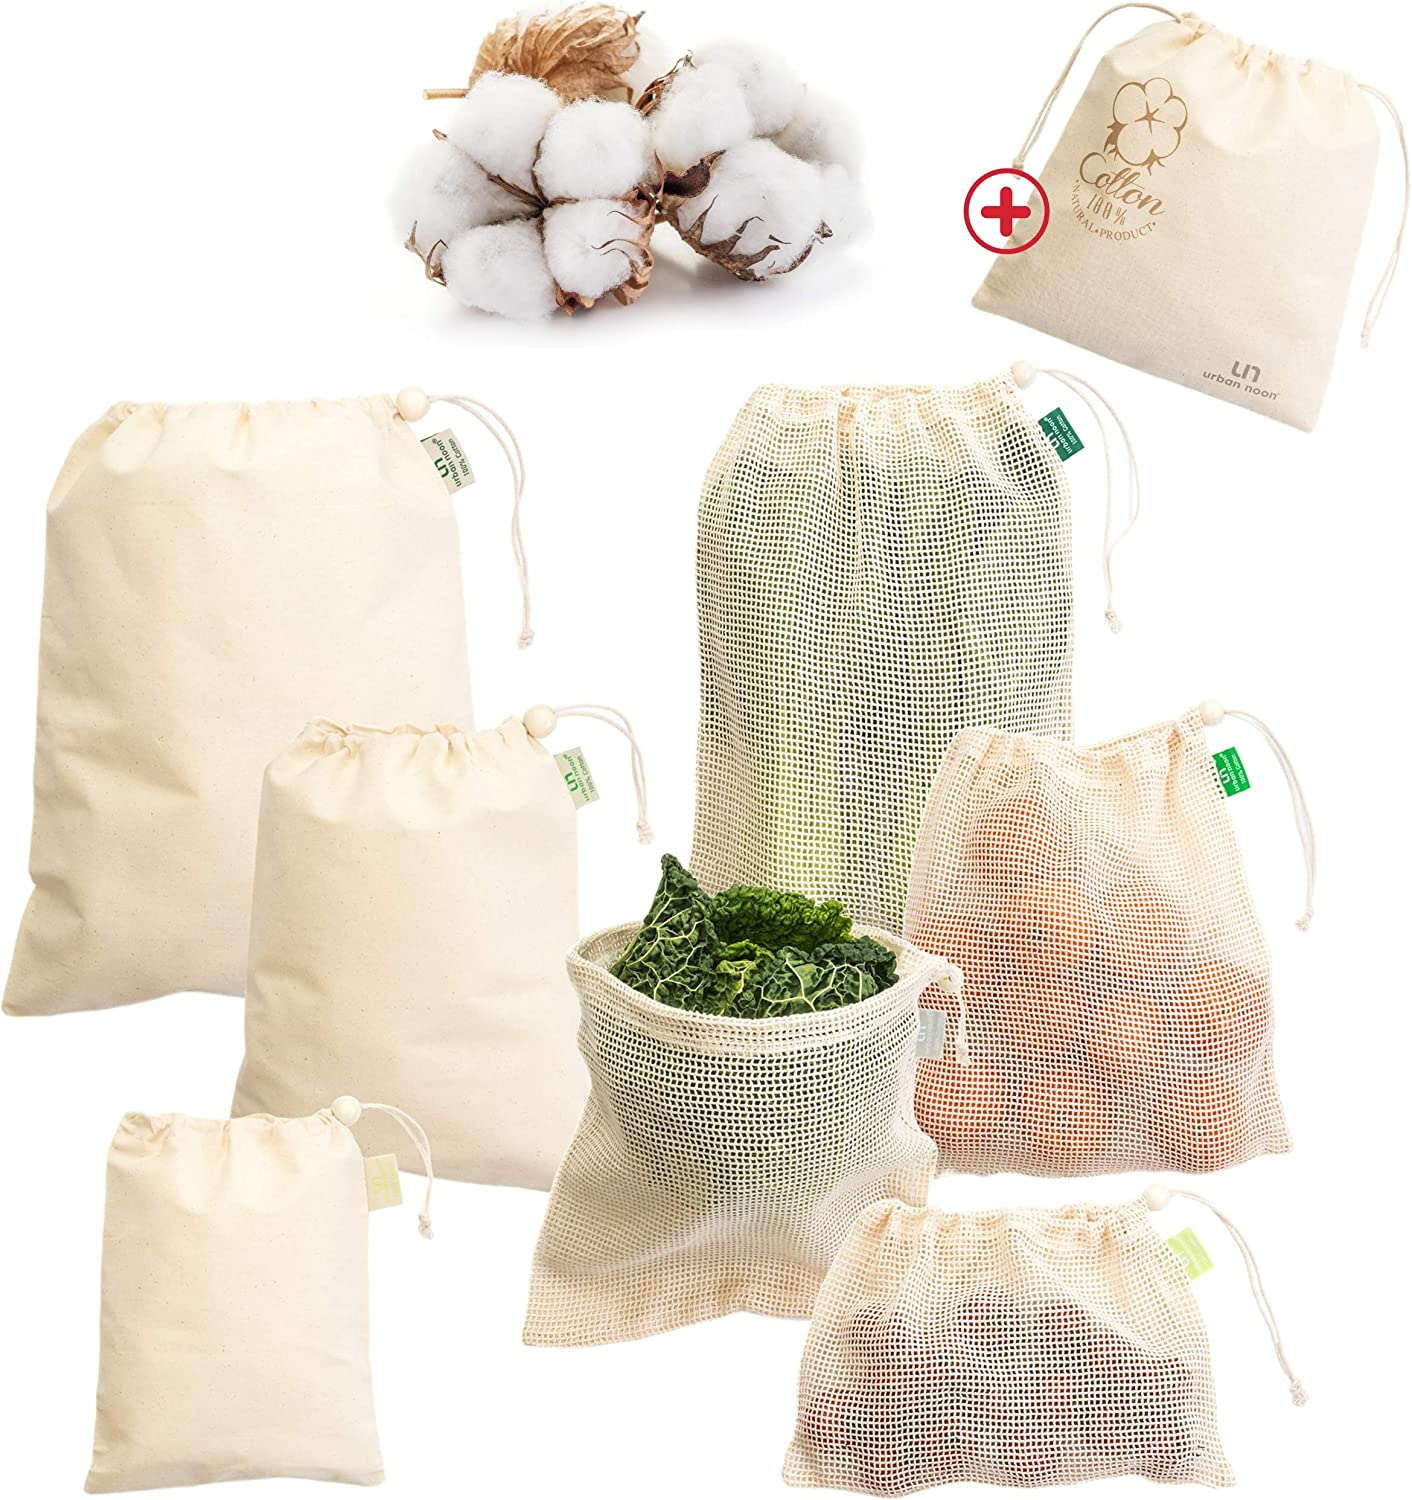 Reusable Produce Bags - 8 Pack Organic Cotton Muslin & Mesh Produce Bags with Drawstring, Bead, Tare Weight - for Grocery Shopping & Storage - Washable Strong Net Bags for Vegetables